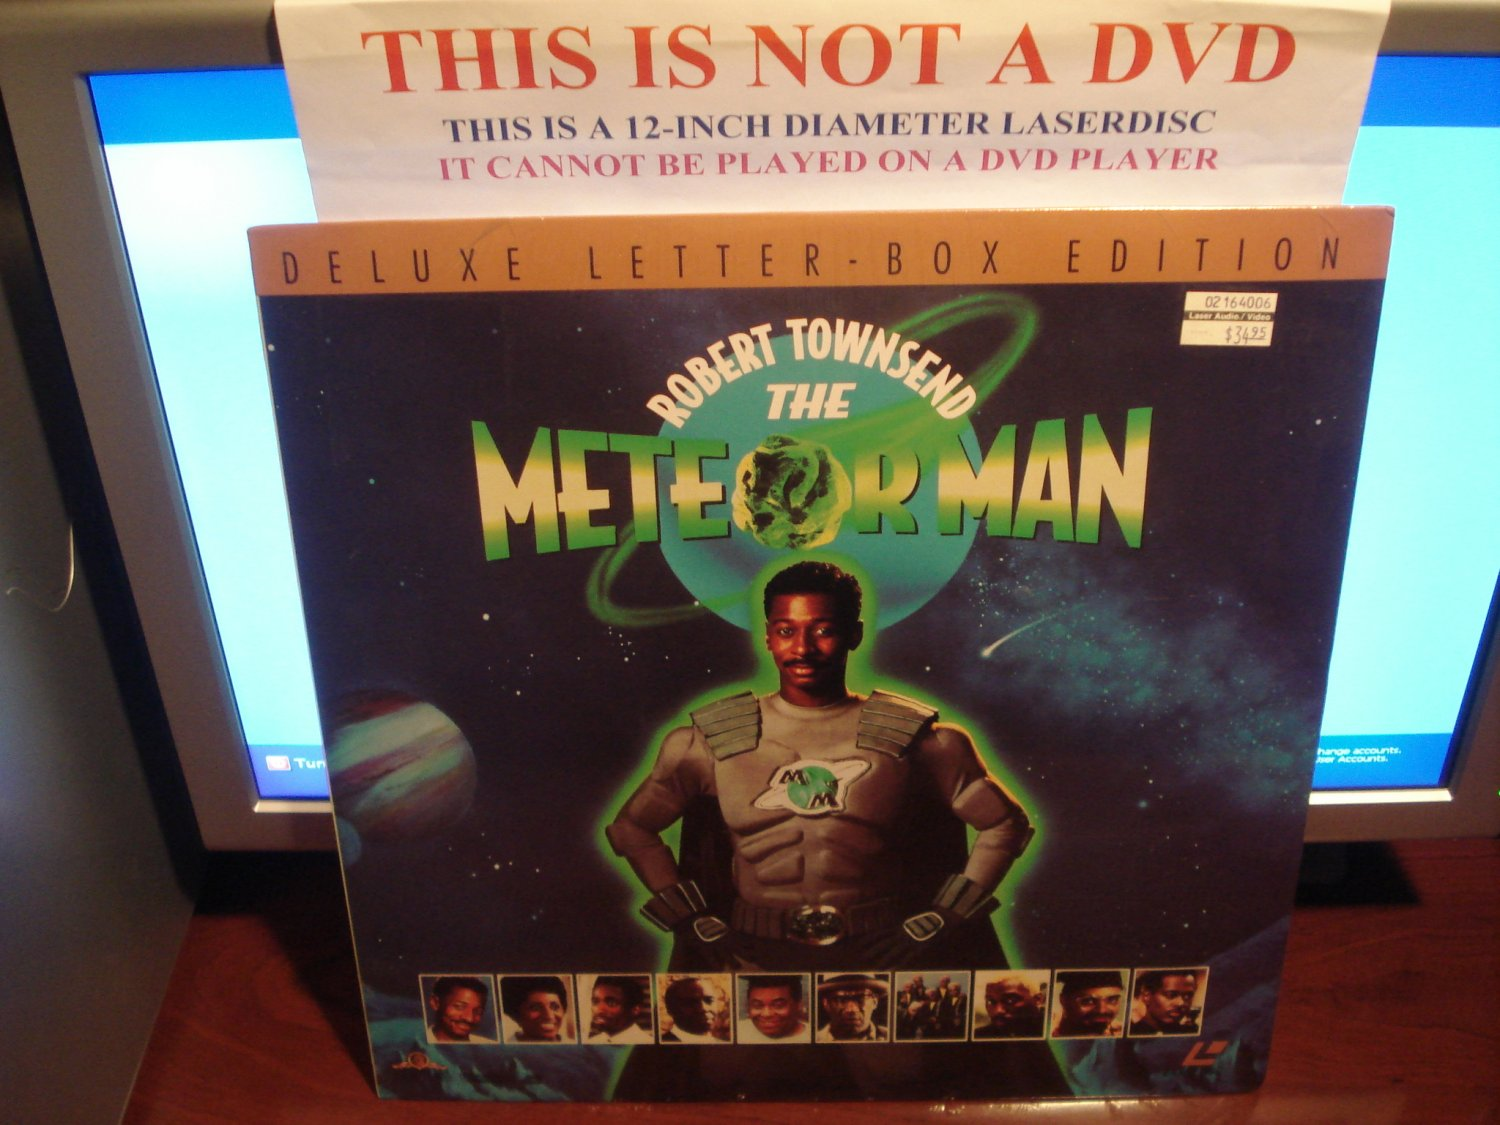 Laserdisc THE METEOR MAN 1993 Bill Cosby Lot#2 DLX LTBX SEALED UNOPENED Sci-Fi LD